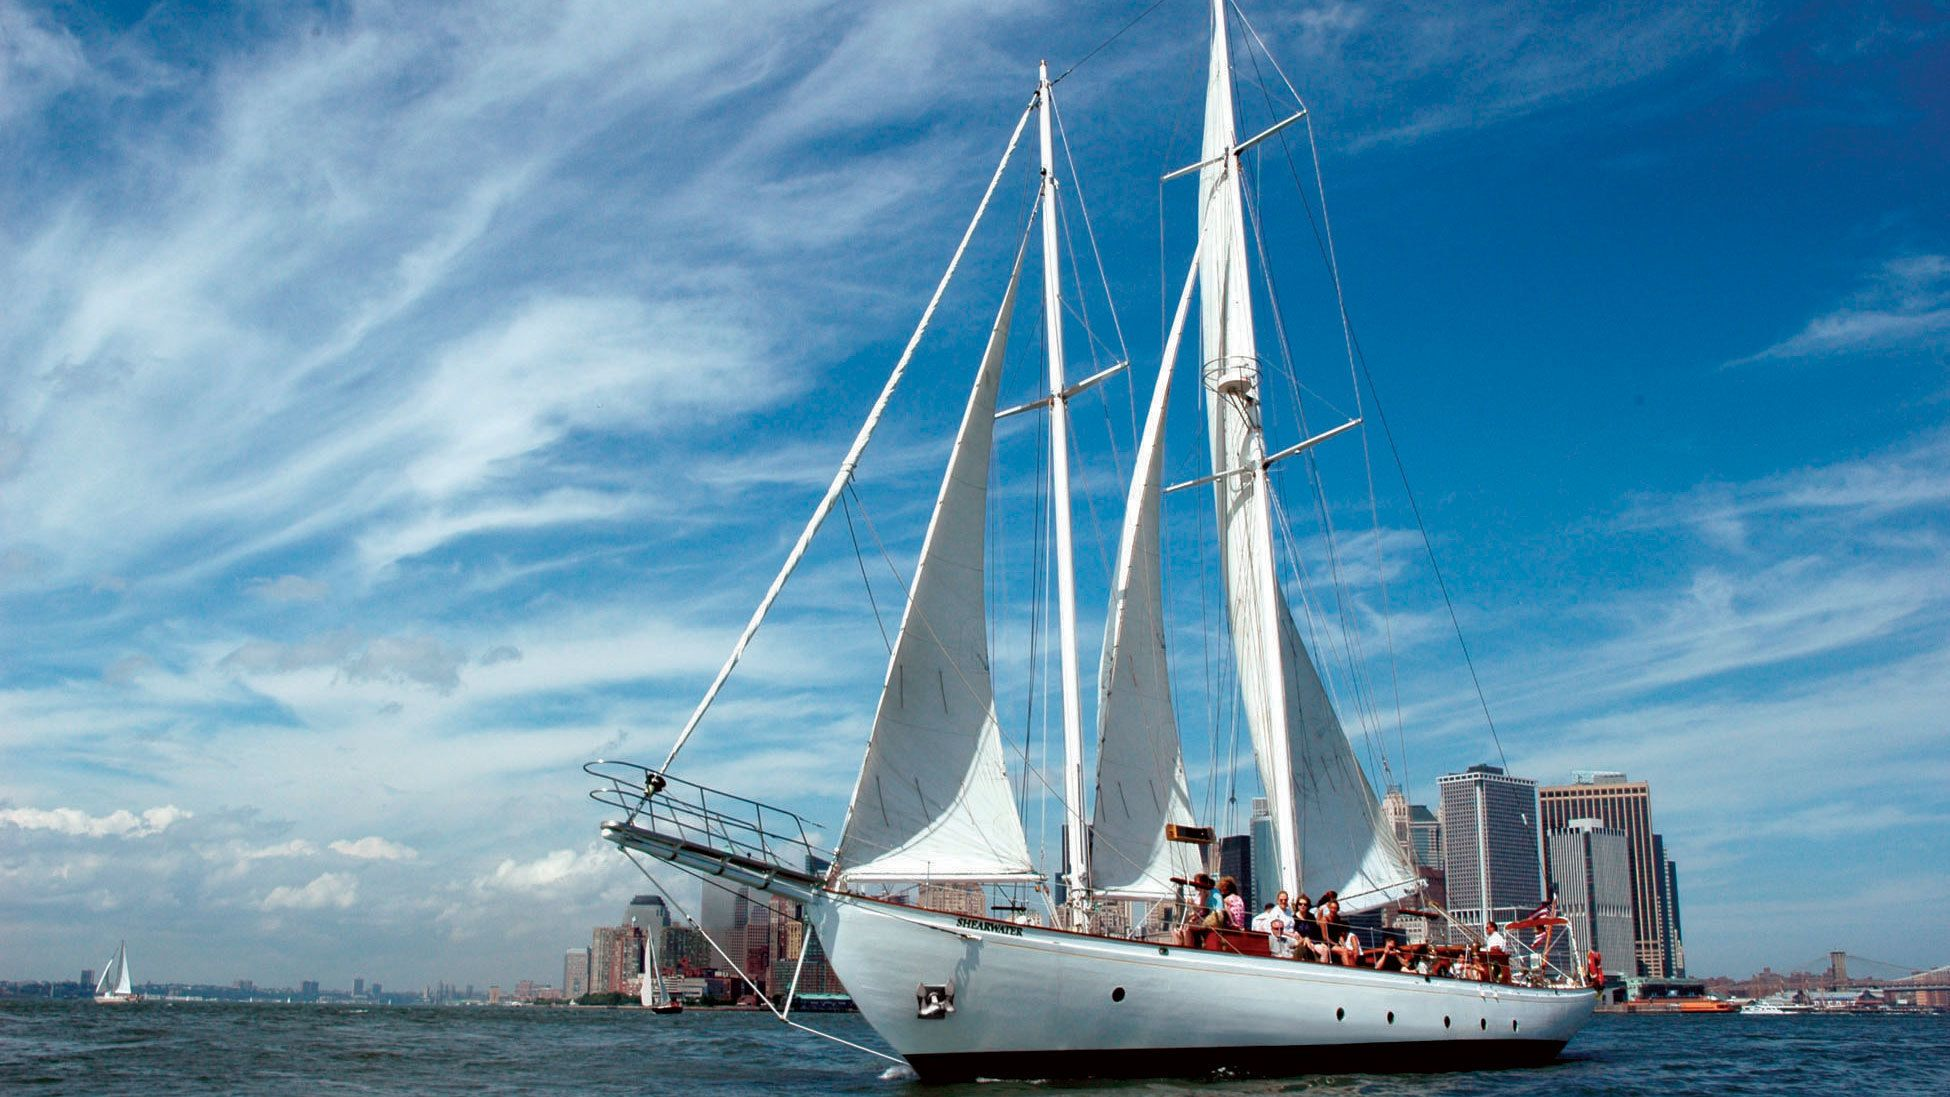 Schooner with the city in the background in New York